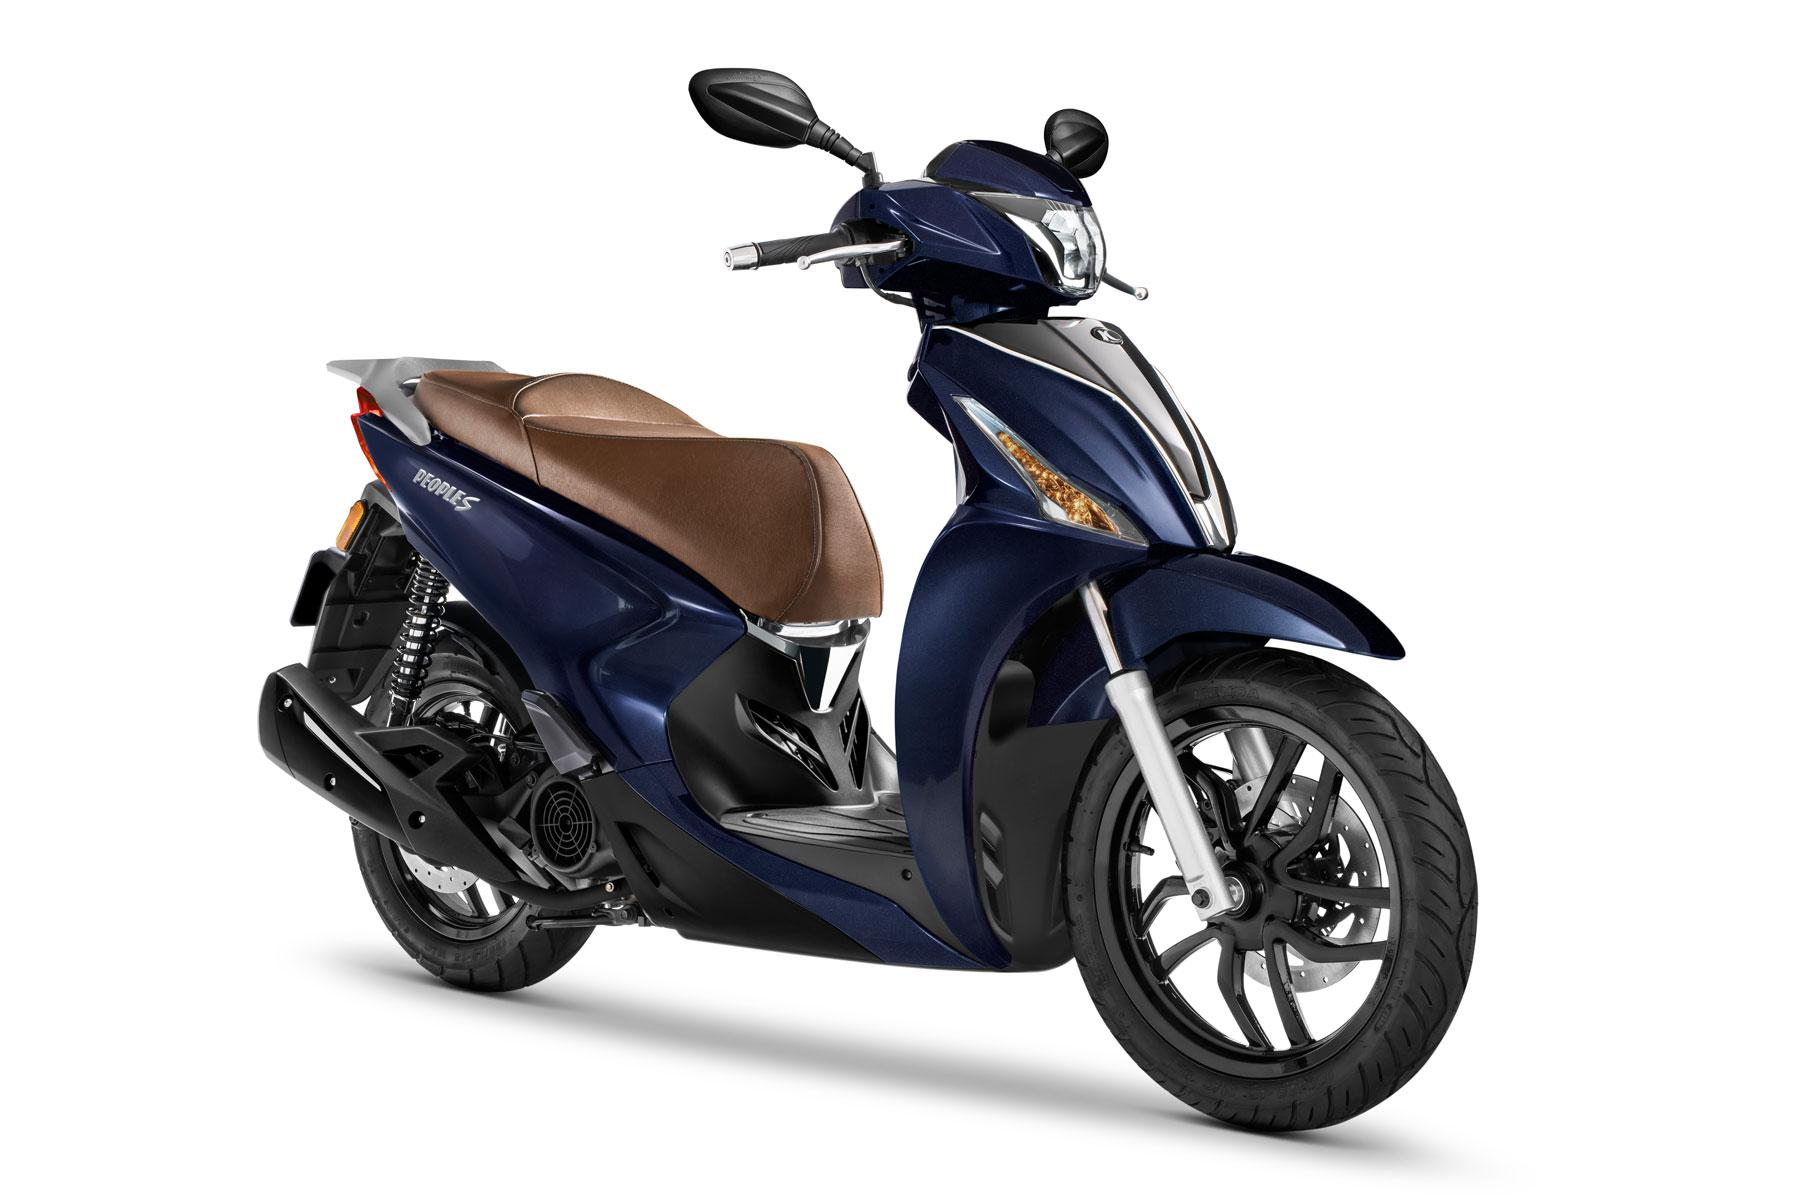 KYMCO PEOPLE S 125 ABS   EURO 5